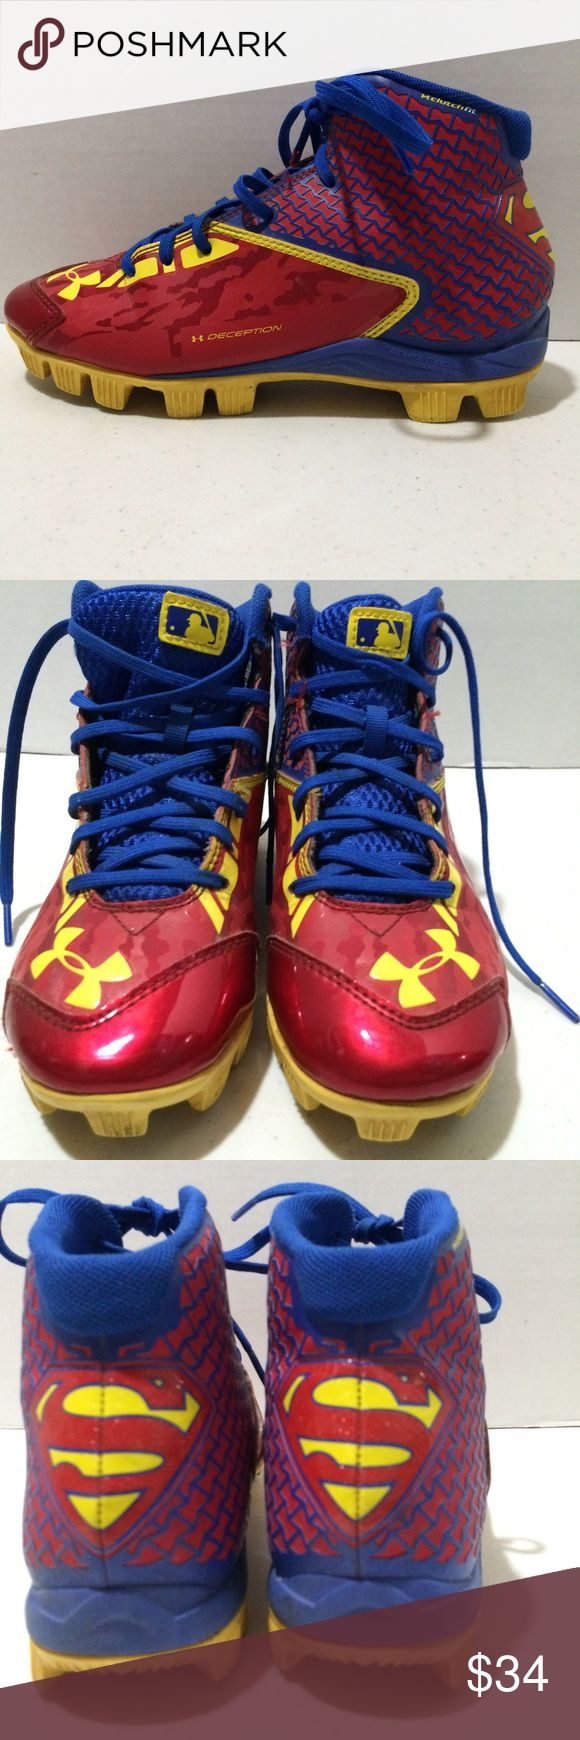 Under armour alter ego superman cleats 4 Under Armour Baseball Cleats. Youth size 4 Red blue yellow. Clutchfit Deception Has superman logo on back of heel. MLB Authentic Collection Previously owned. Good condition. No rips or tears. Clean. Measure 9 3/4 inches on bottom of sole. Approximately 8 3/4 inches on inner sole. Under Armour Shoes